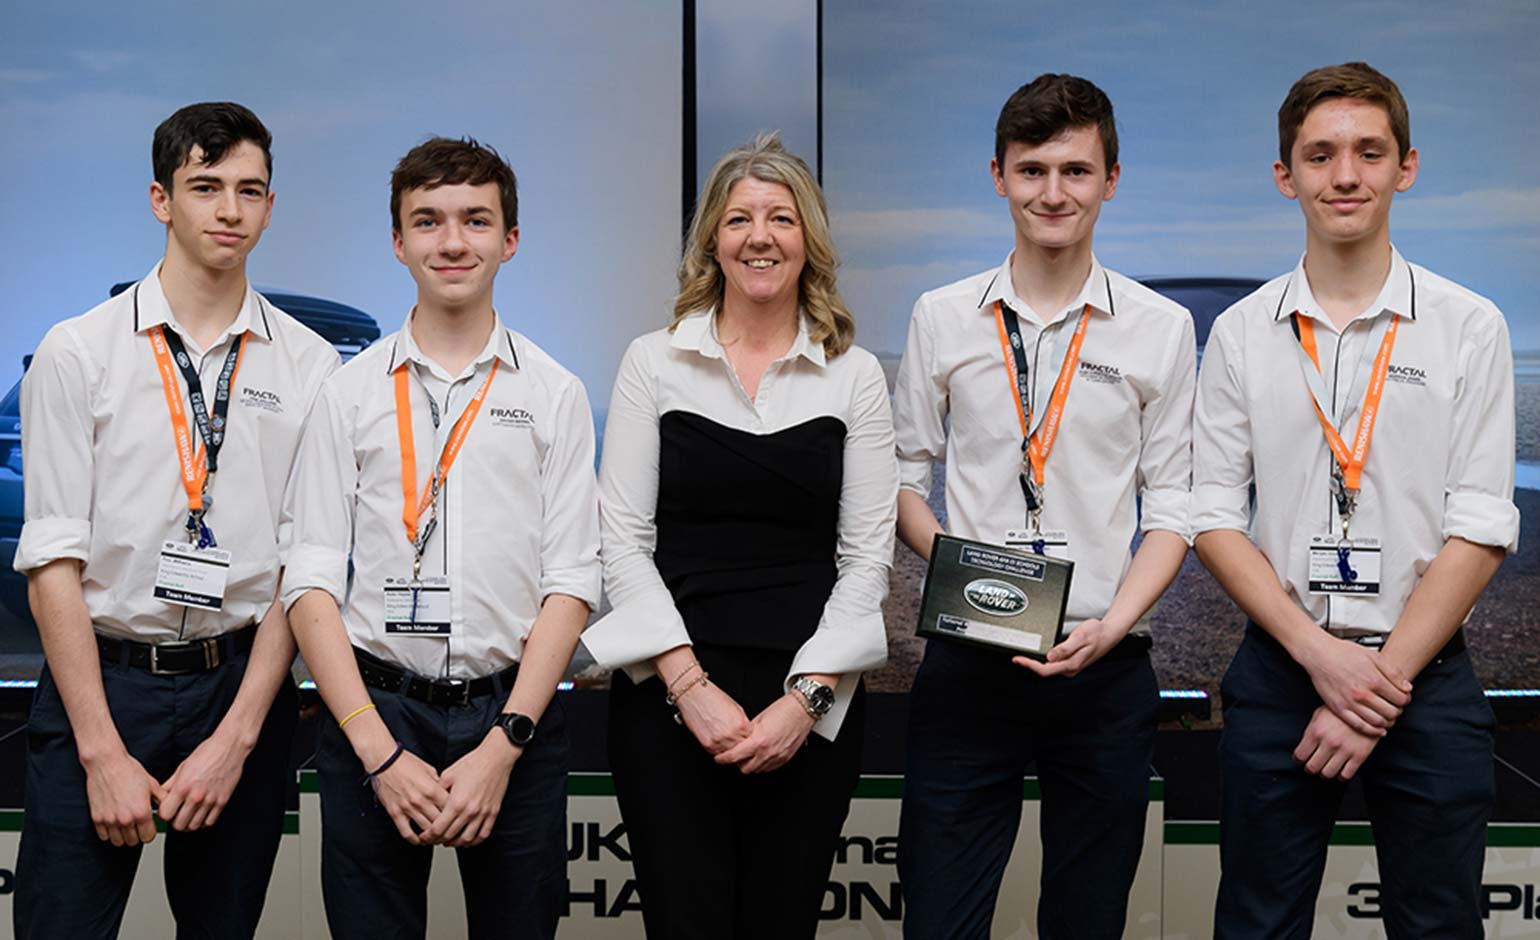 KES team announced as joint Land Rover 4x4 in Schools UK Champions